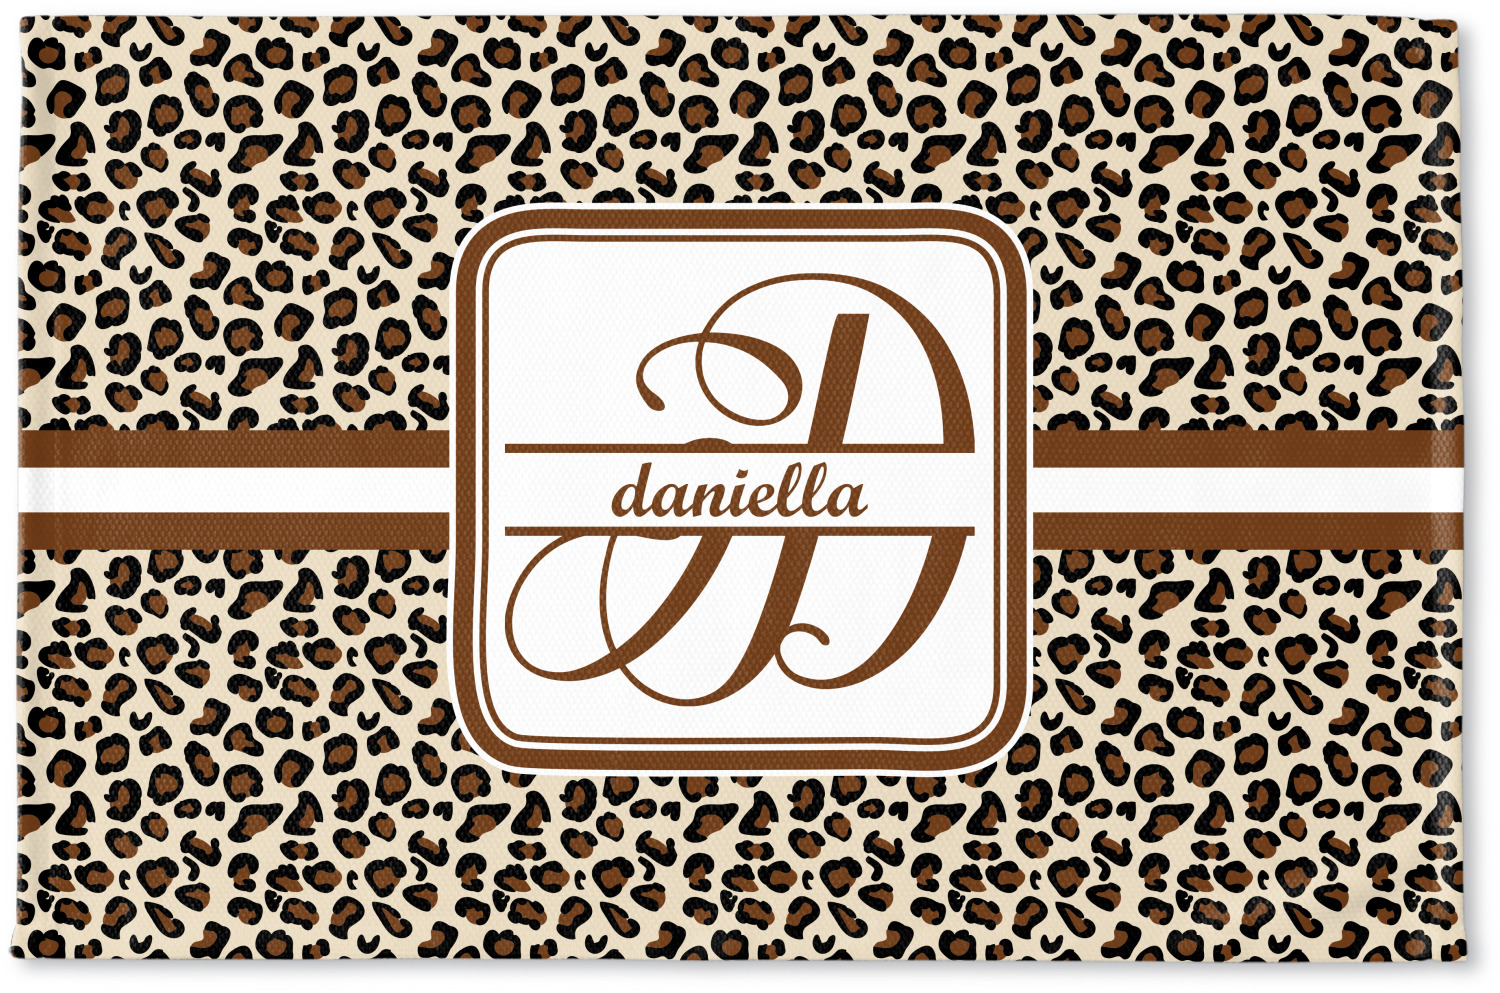 Leopard print woven mat personalized youcustomizeit for Floor print